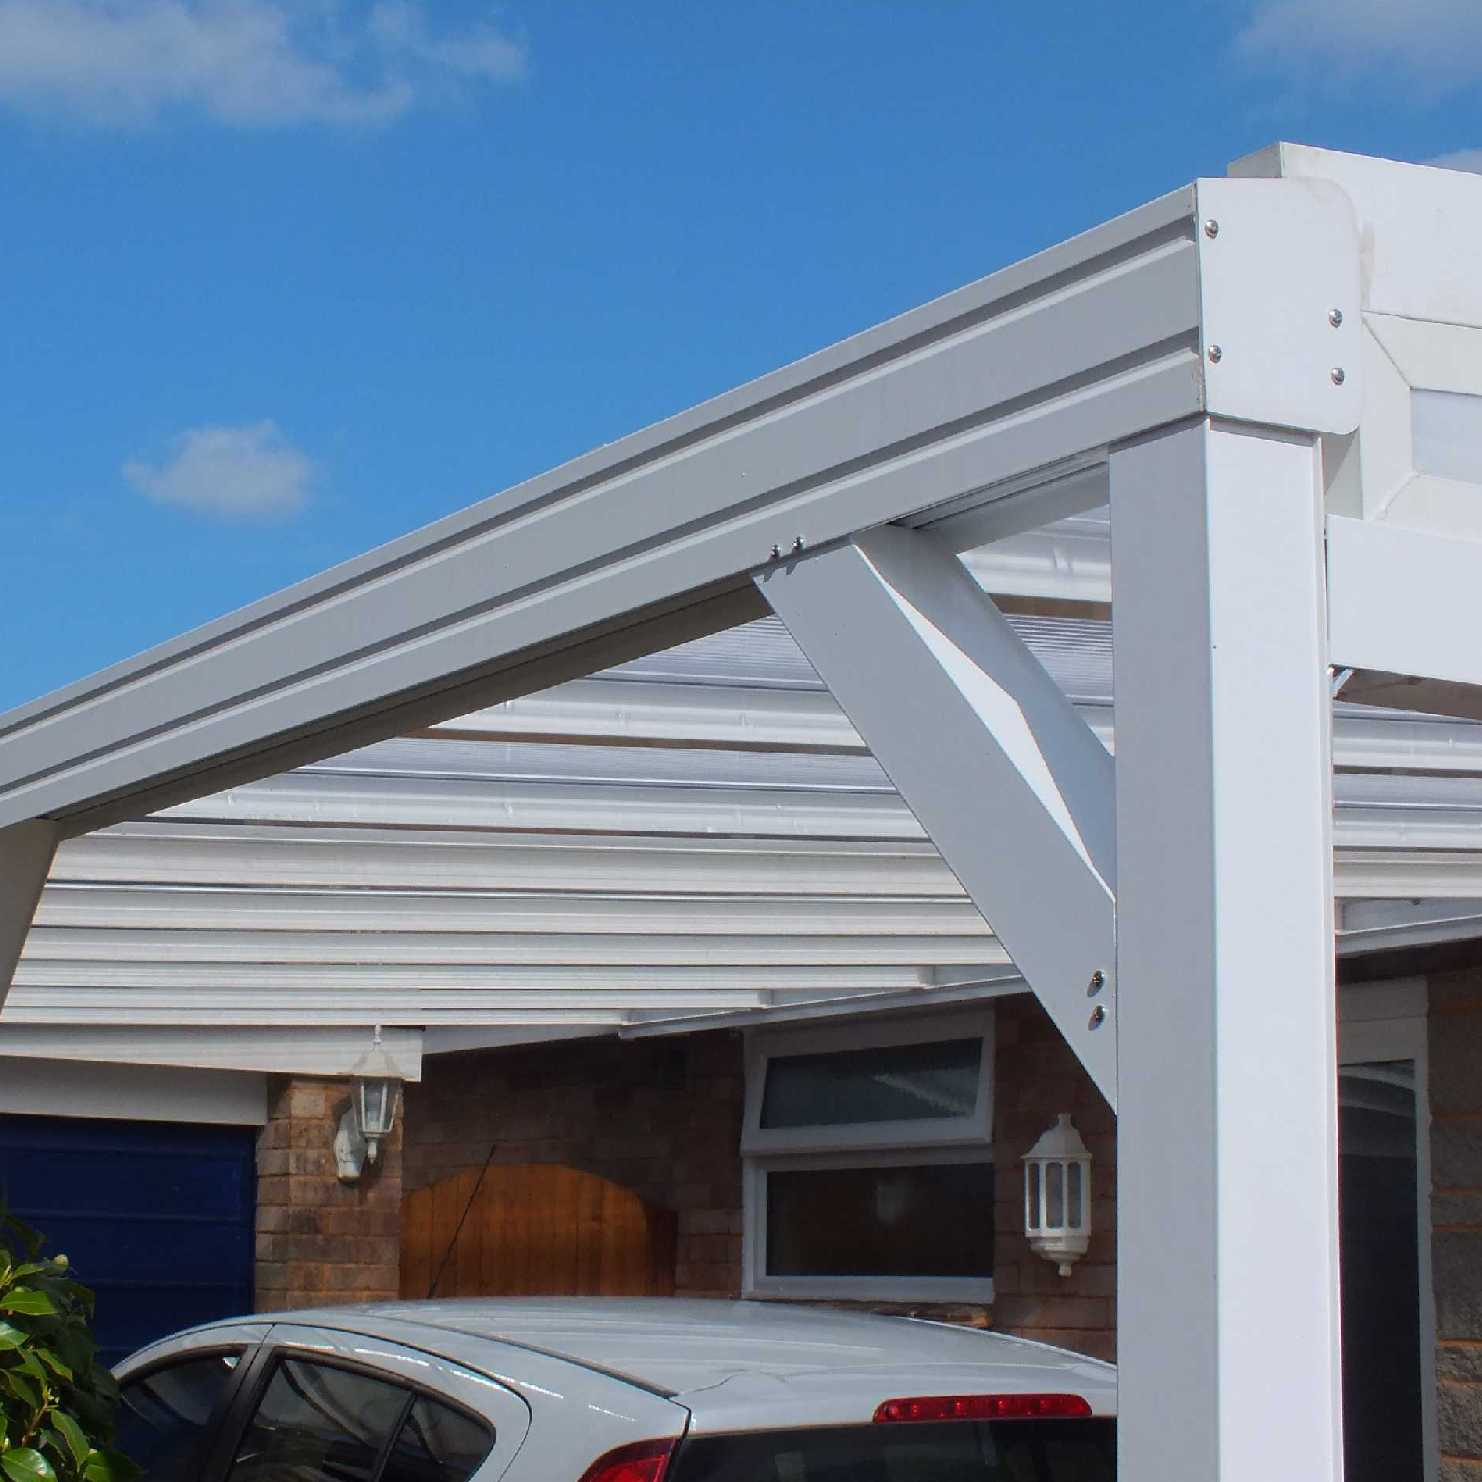 Great deals on Omega Smart White Lean-To Canopy with 16mm Polycarbonate Glazing - 7.0m (W) x 4.5m (P), (4) Supporting Posts